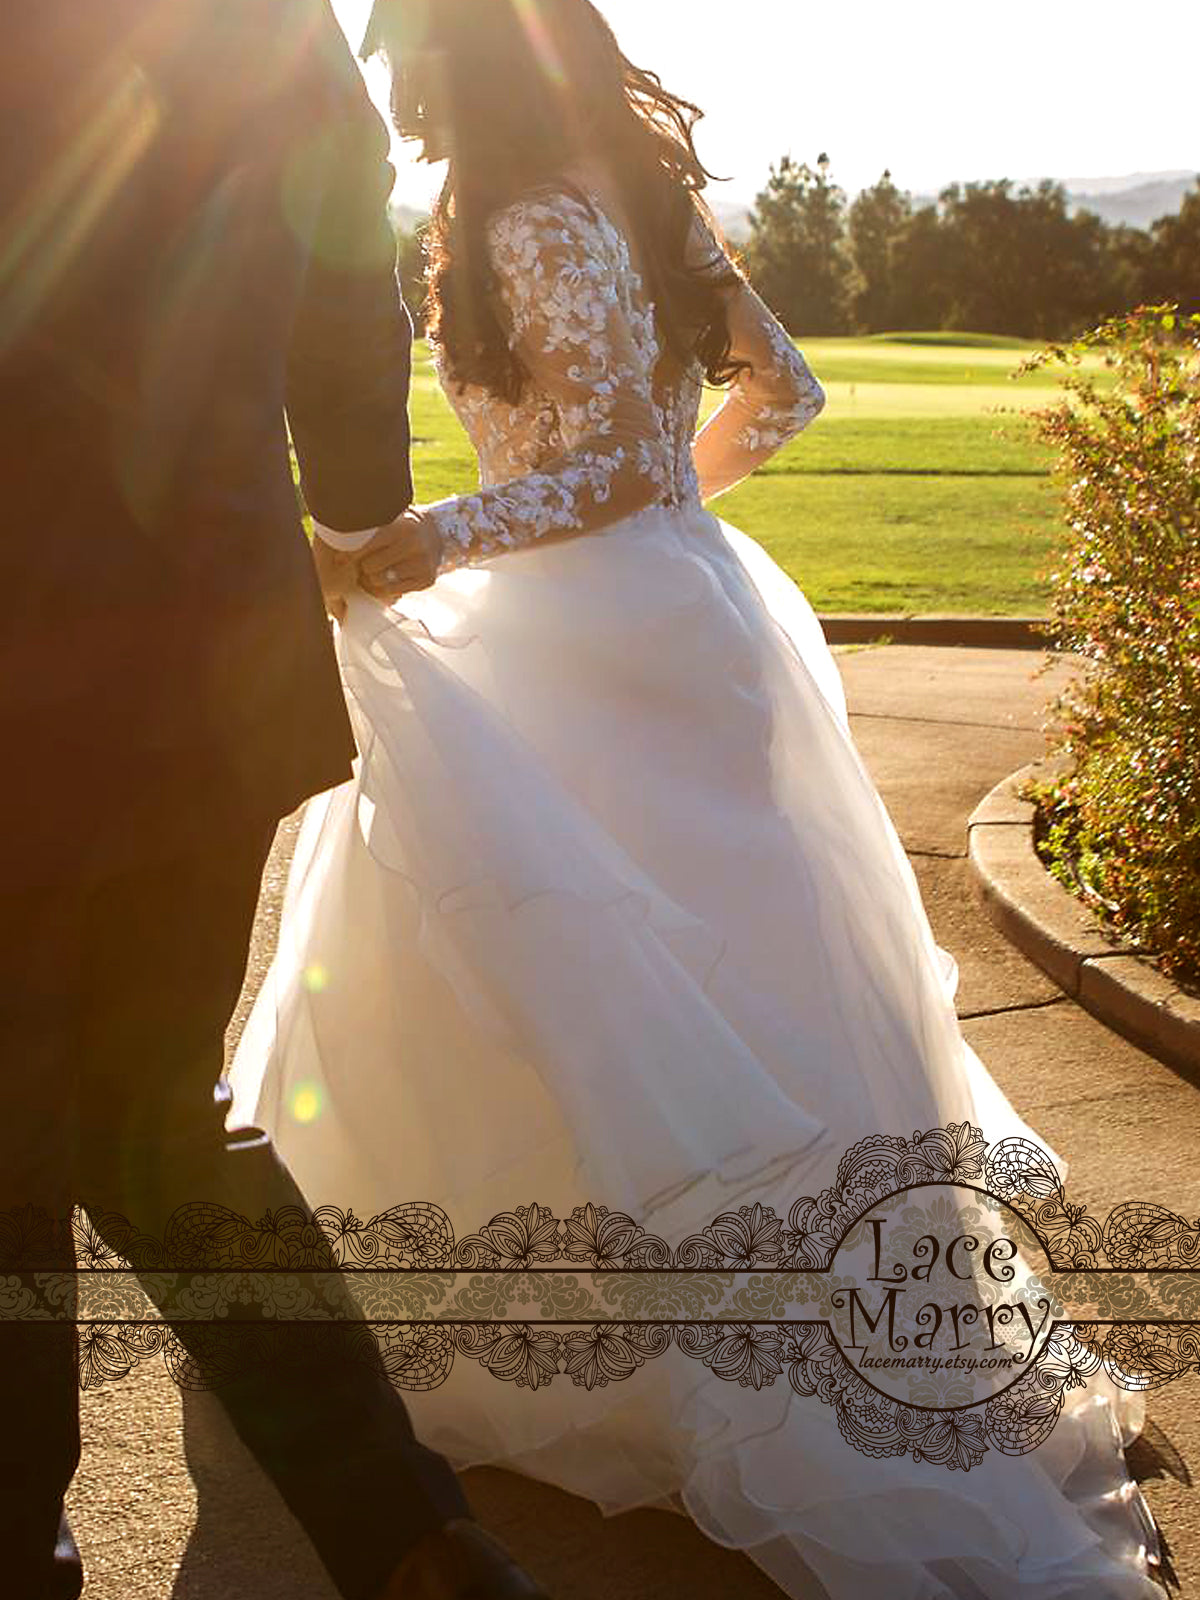 A-Line Wedding Dress with Long Sleeves from Sheer Tulle